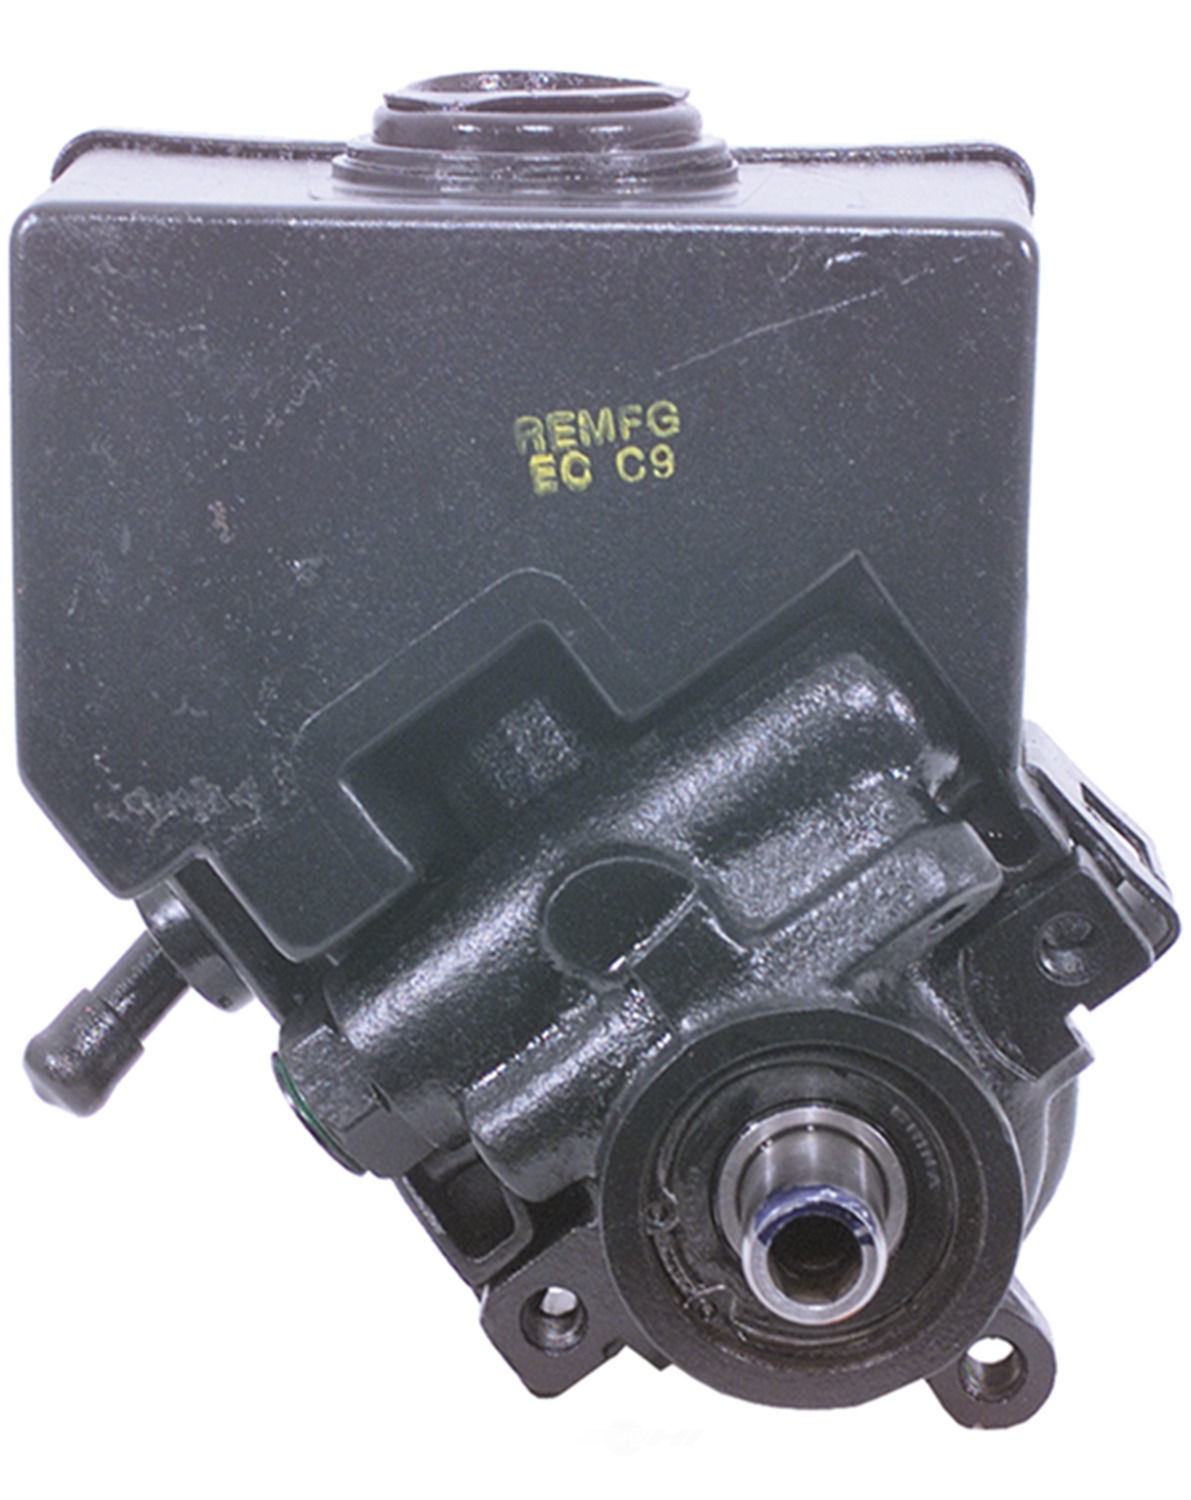 A1 CARDONE 20-10893 - Power Steering Pump - Reman - 2010893